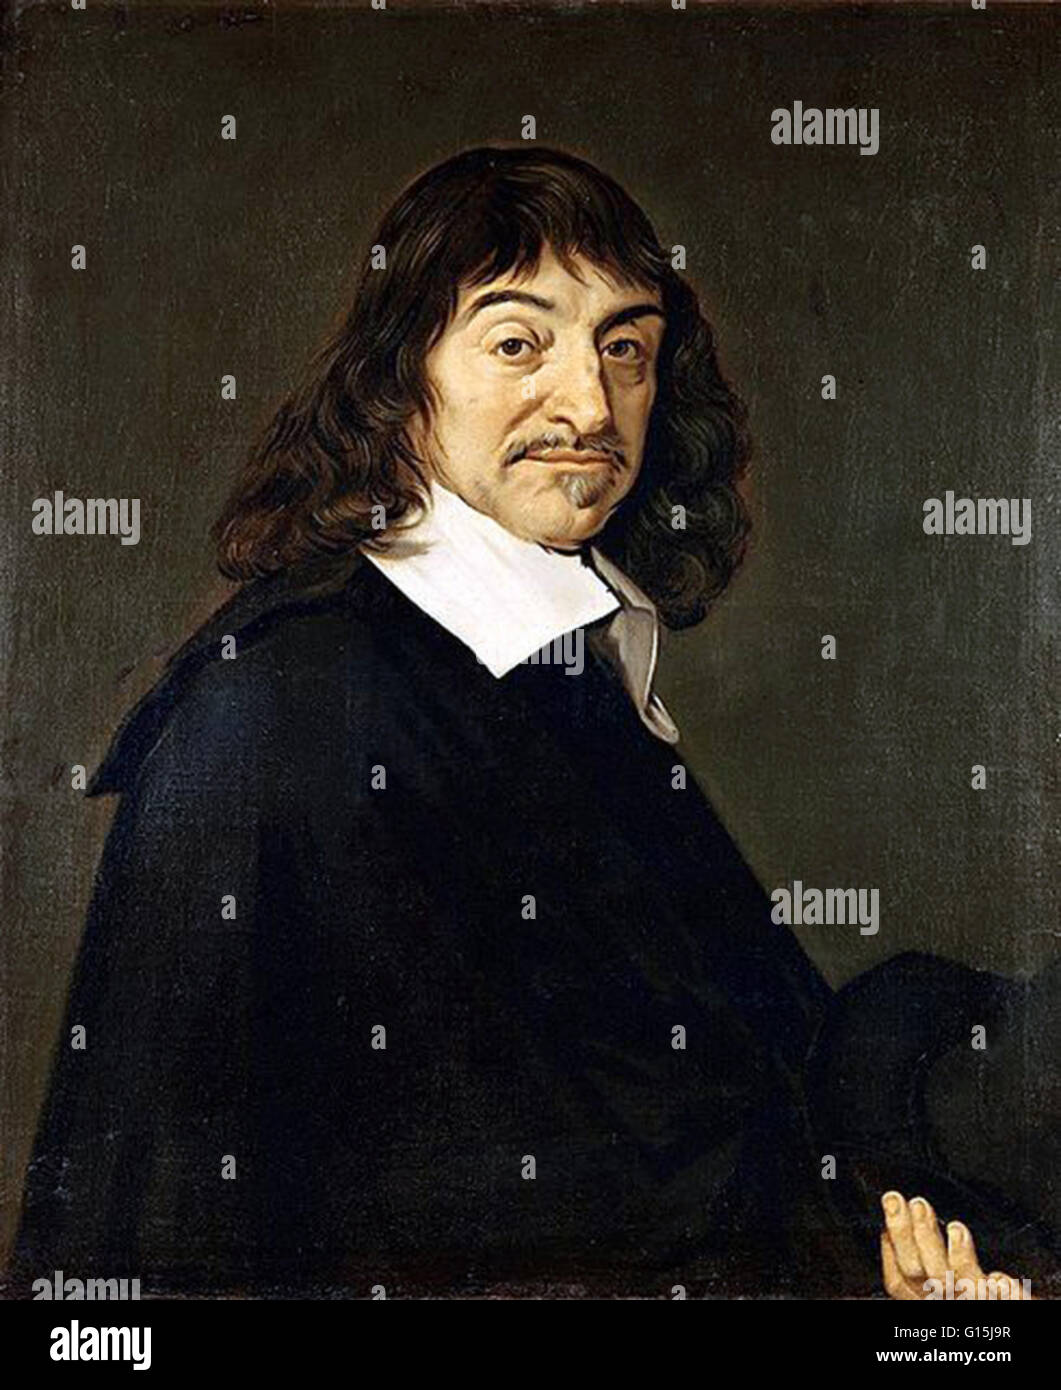 René Descartes (March 31, 1596 - February 11, 1650) was a French mathematician, philosopher and physiologist. Living Stock Photo